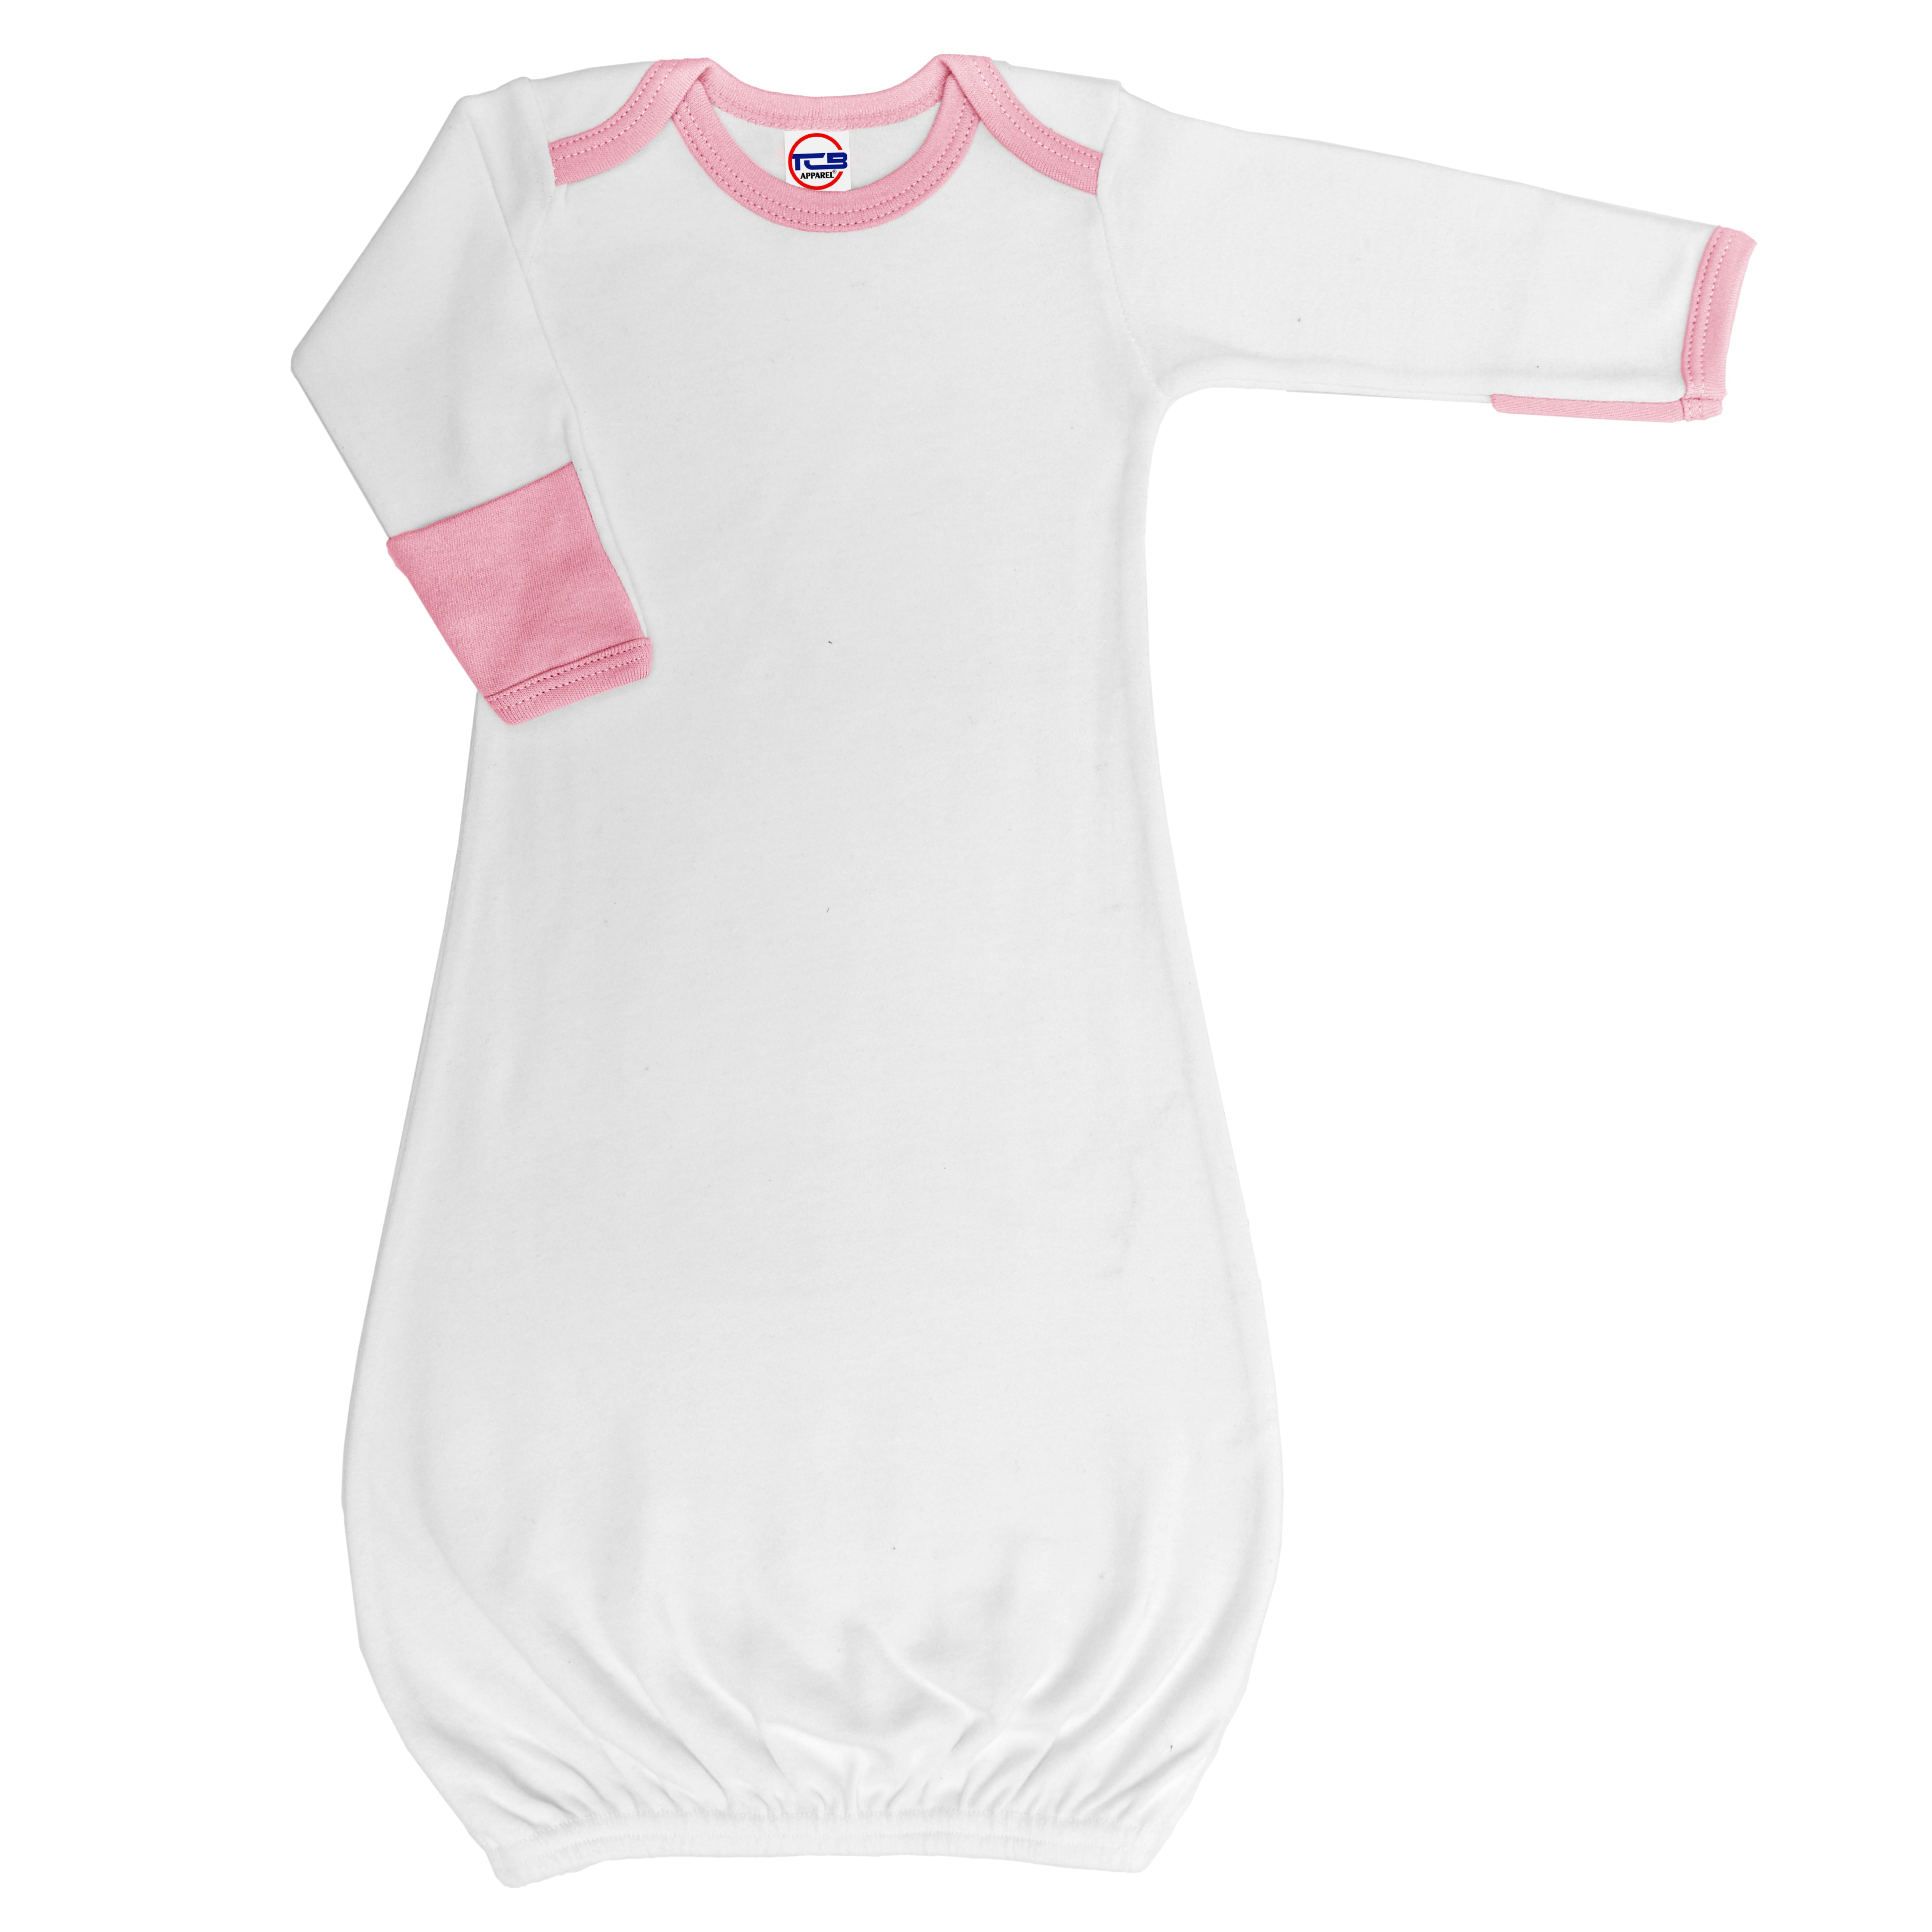 2885P   Baby Ringer Gown w/ Fold Over Mittens - White/Pink   Cutie ...